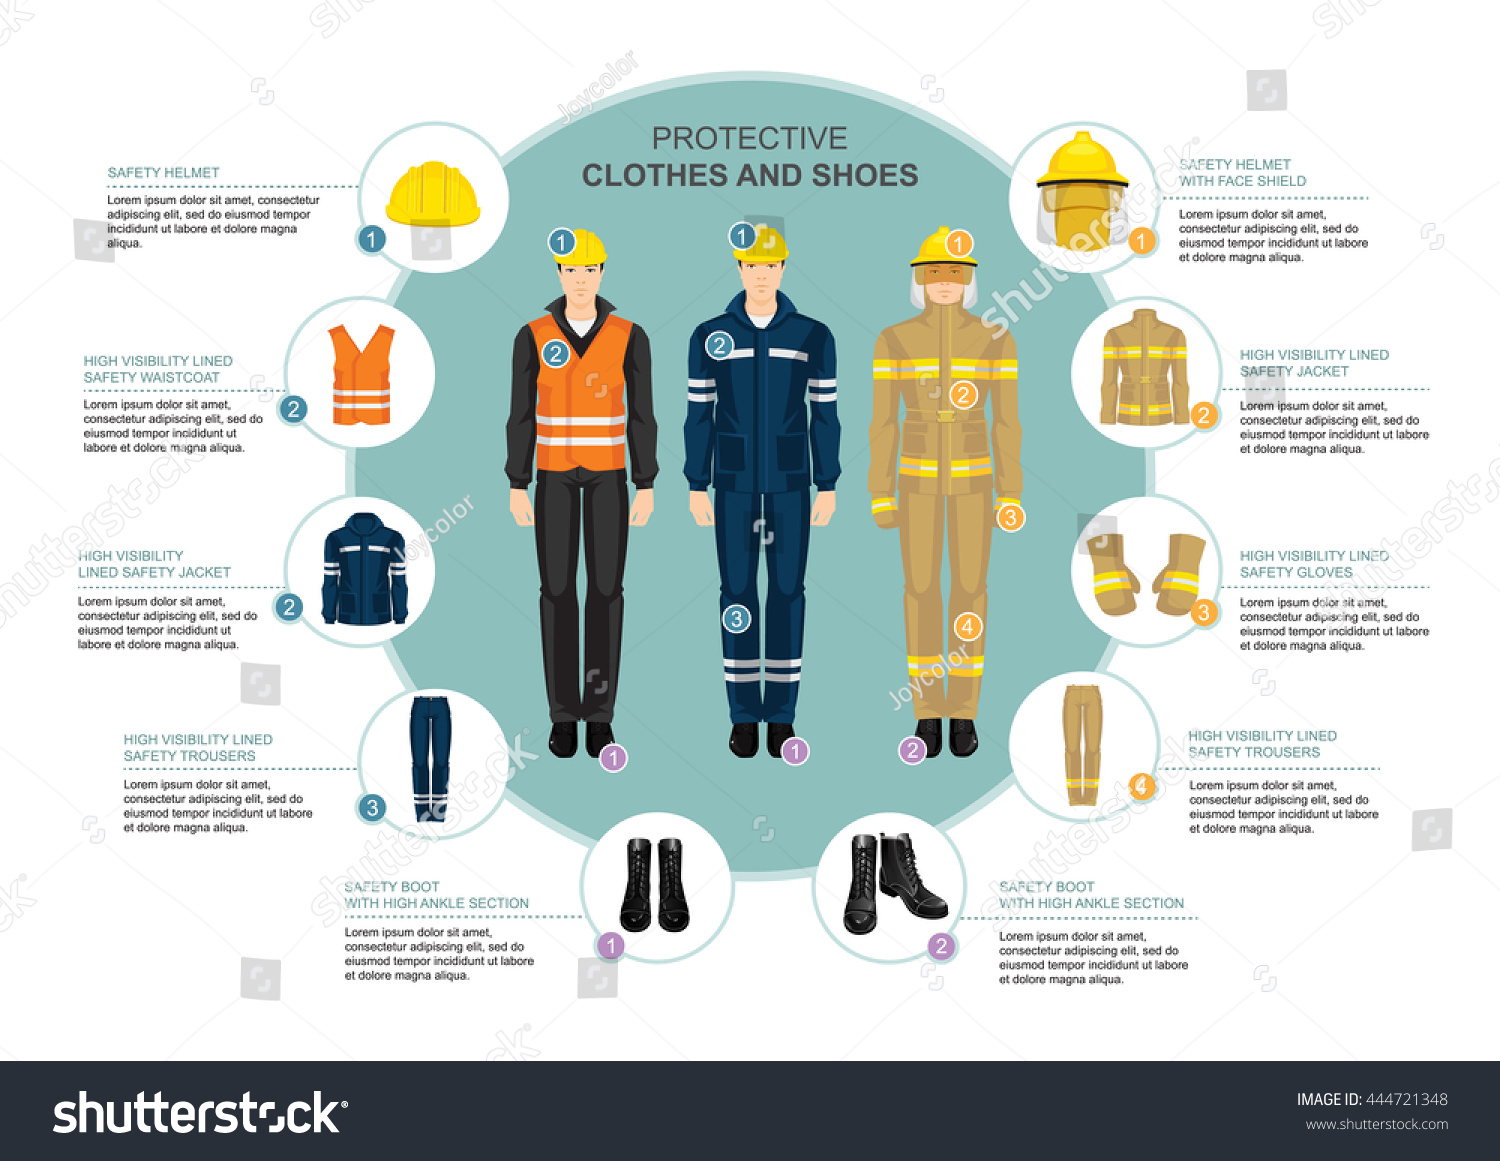 info graphics professional work wear hardworking stock vektor info graphics professional work wear for hard working people safety clothes shoes